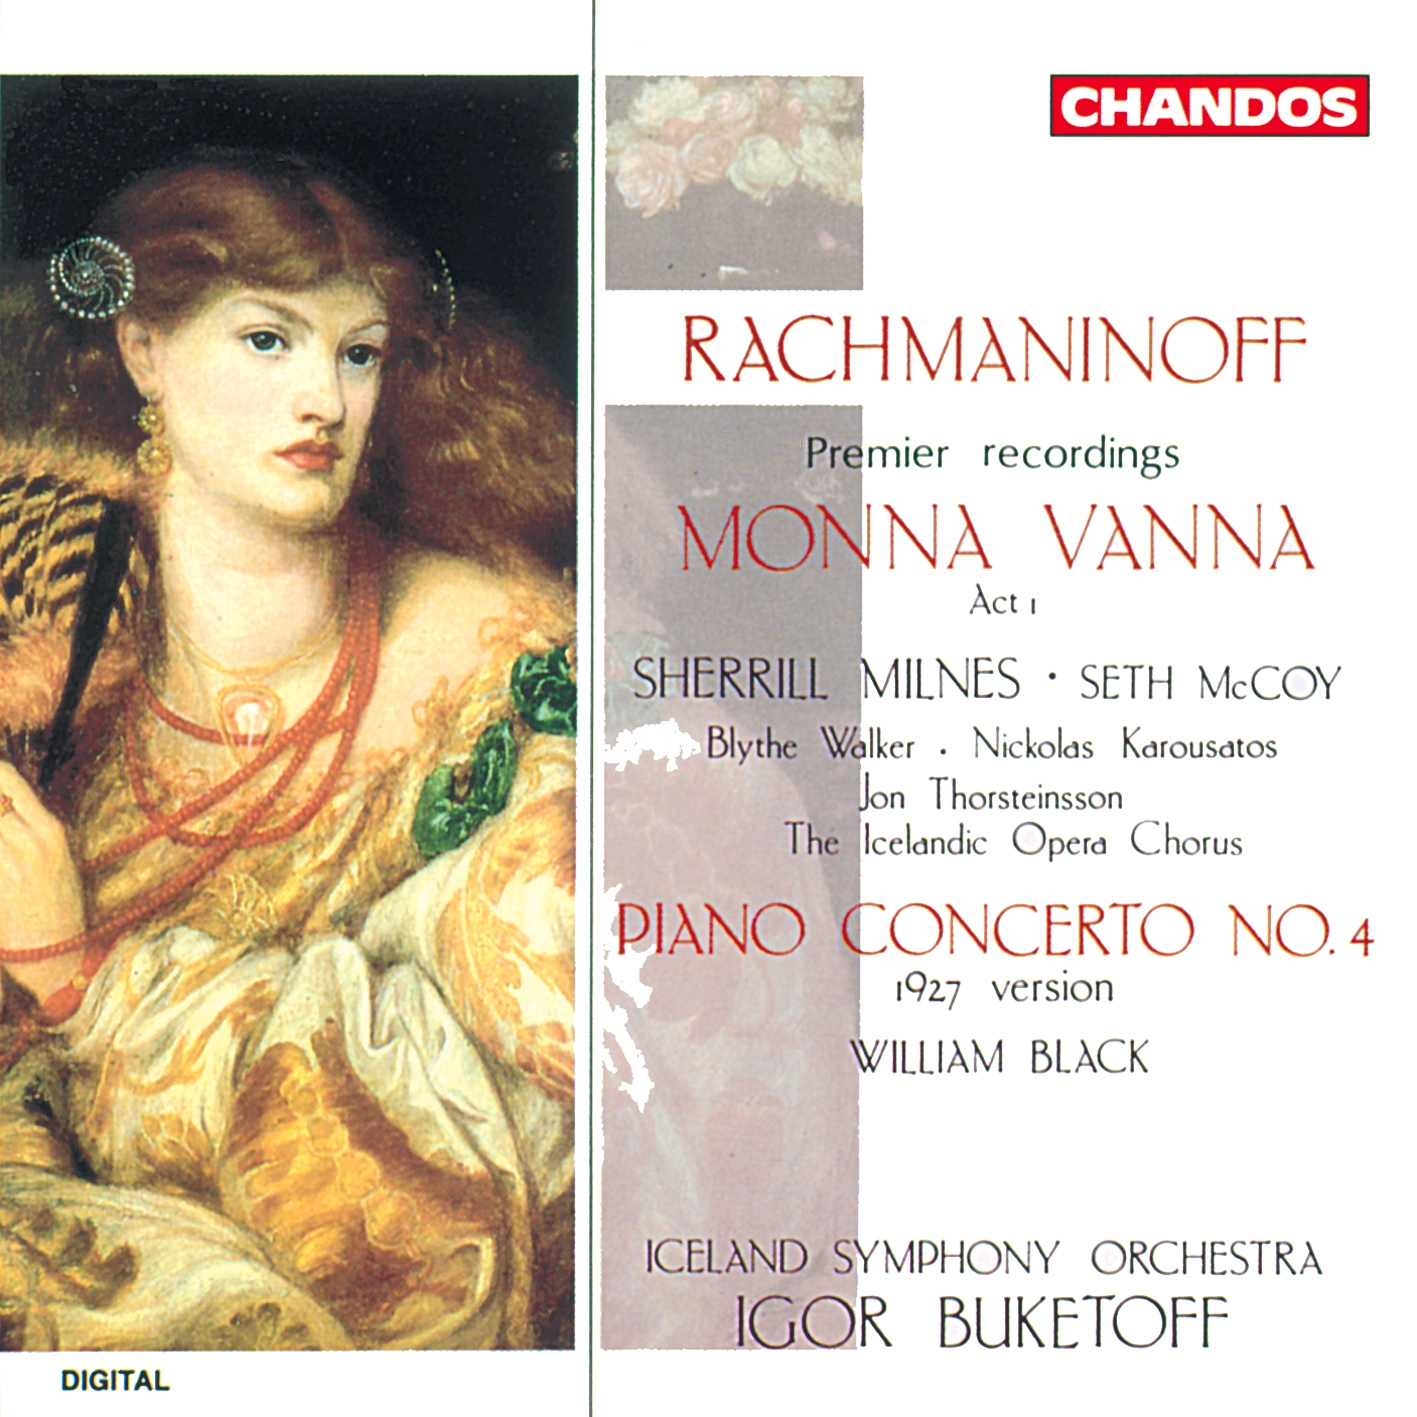 Rachmaninoff - Milnes, McCoy, Walker, Karousatos, Thorsteinsson, William Black, Igor Buketoff Monna Vanna / Piano Concerto No. 4